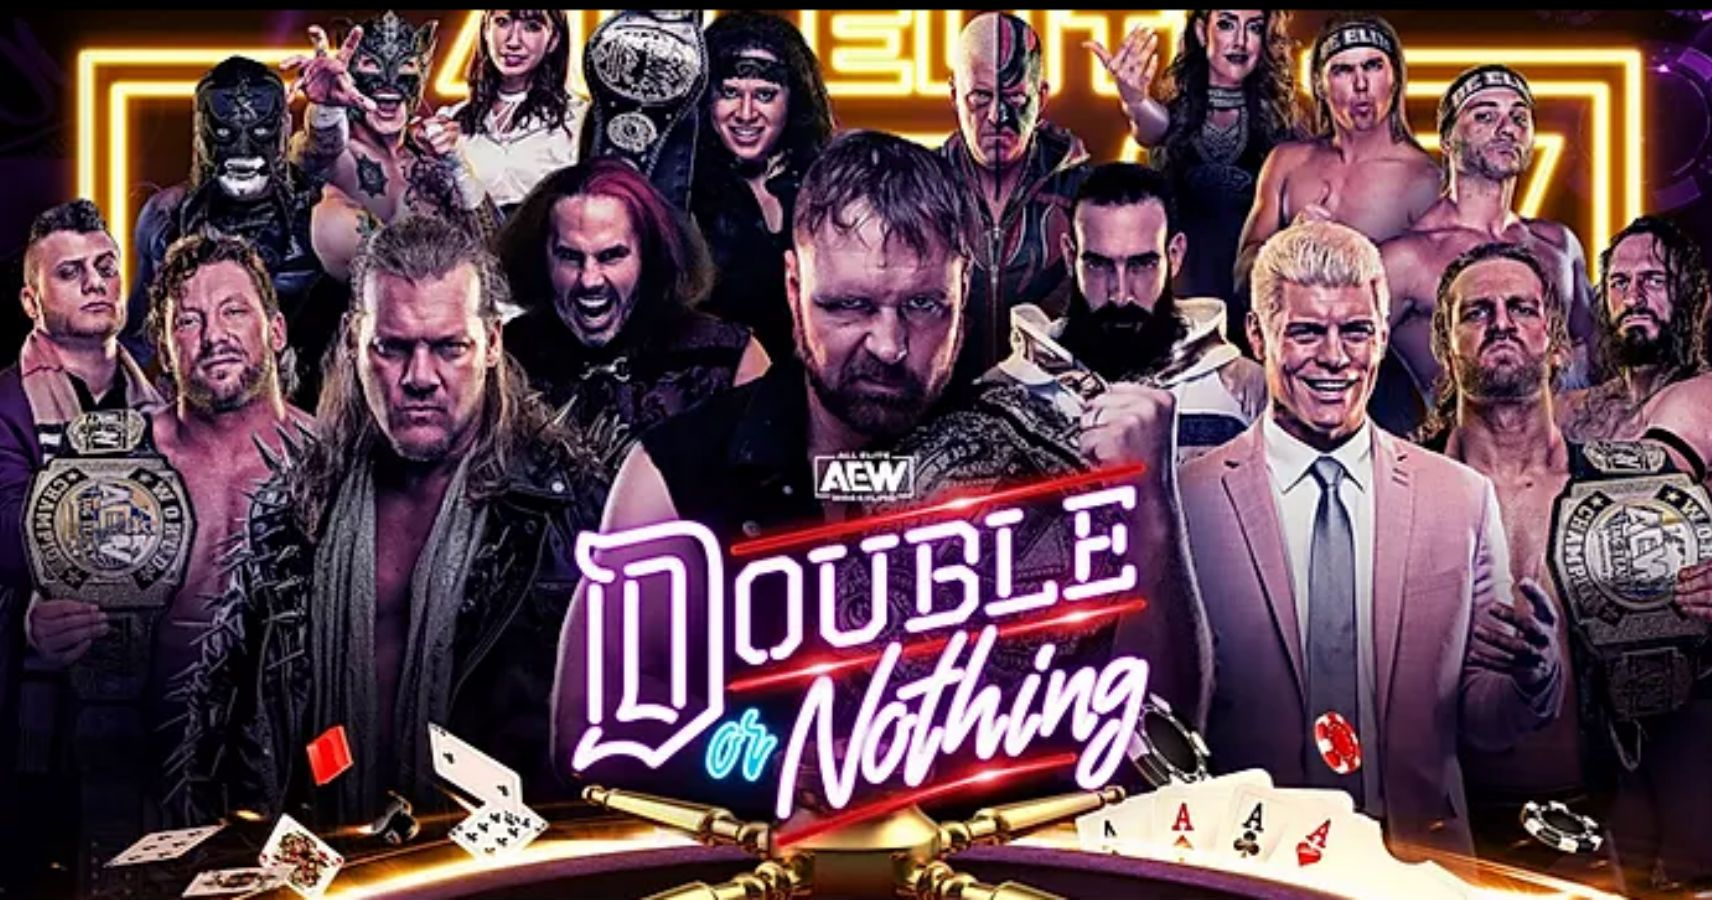 aew double or nothing update all elite wrestling